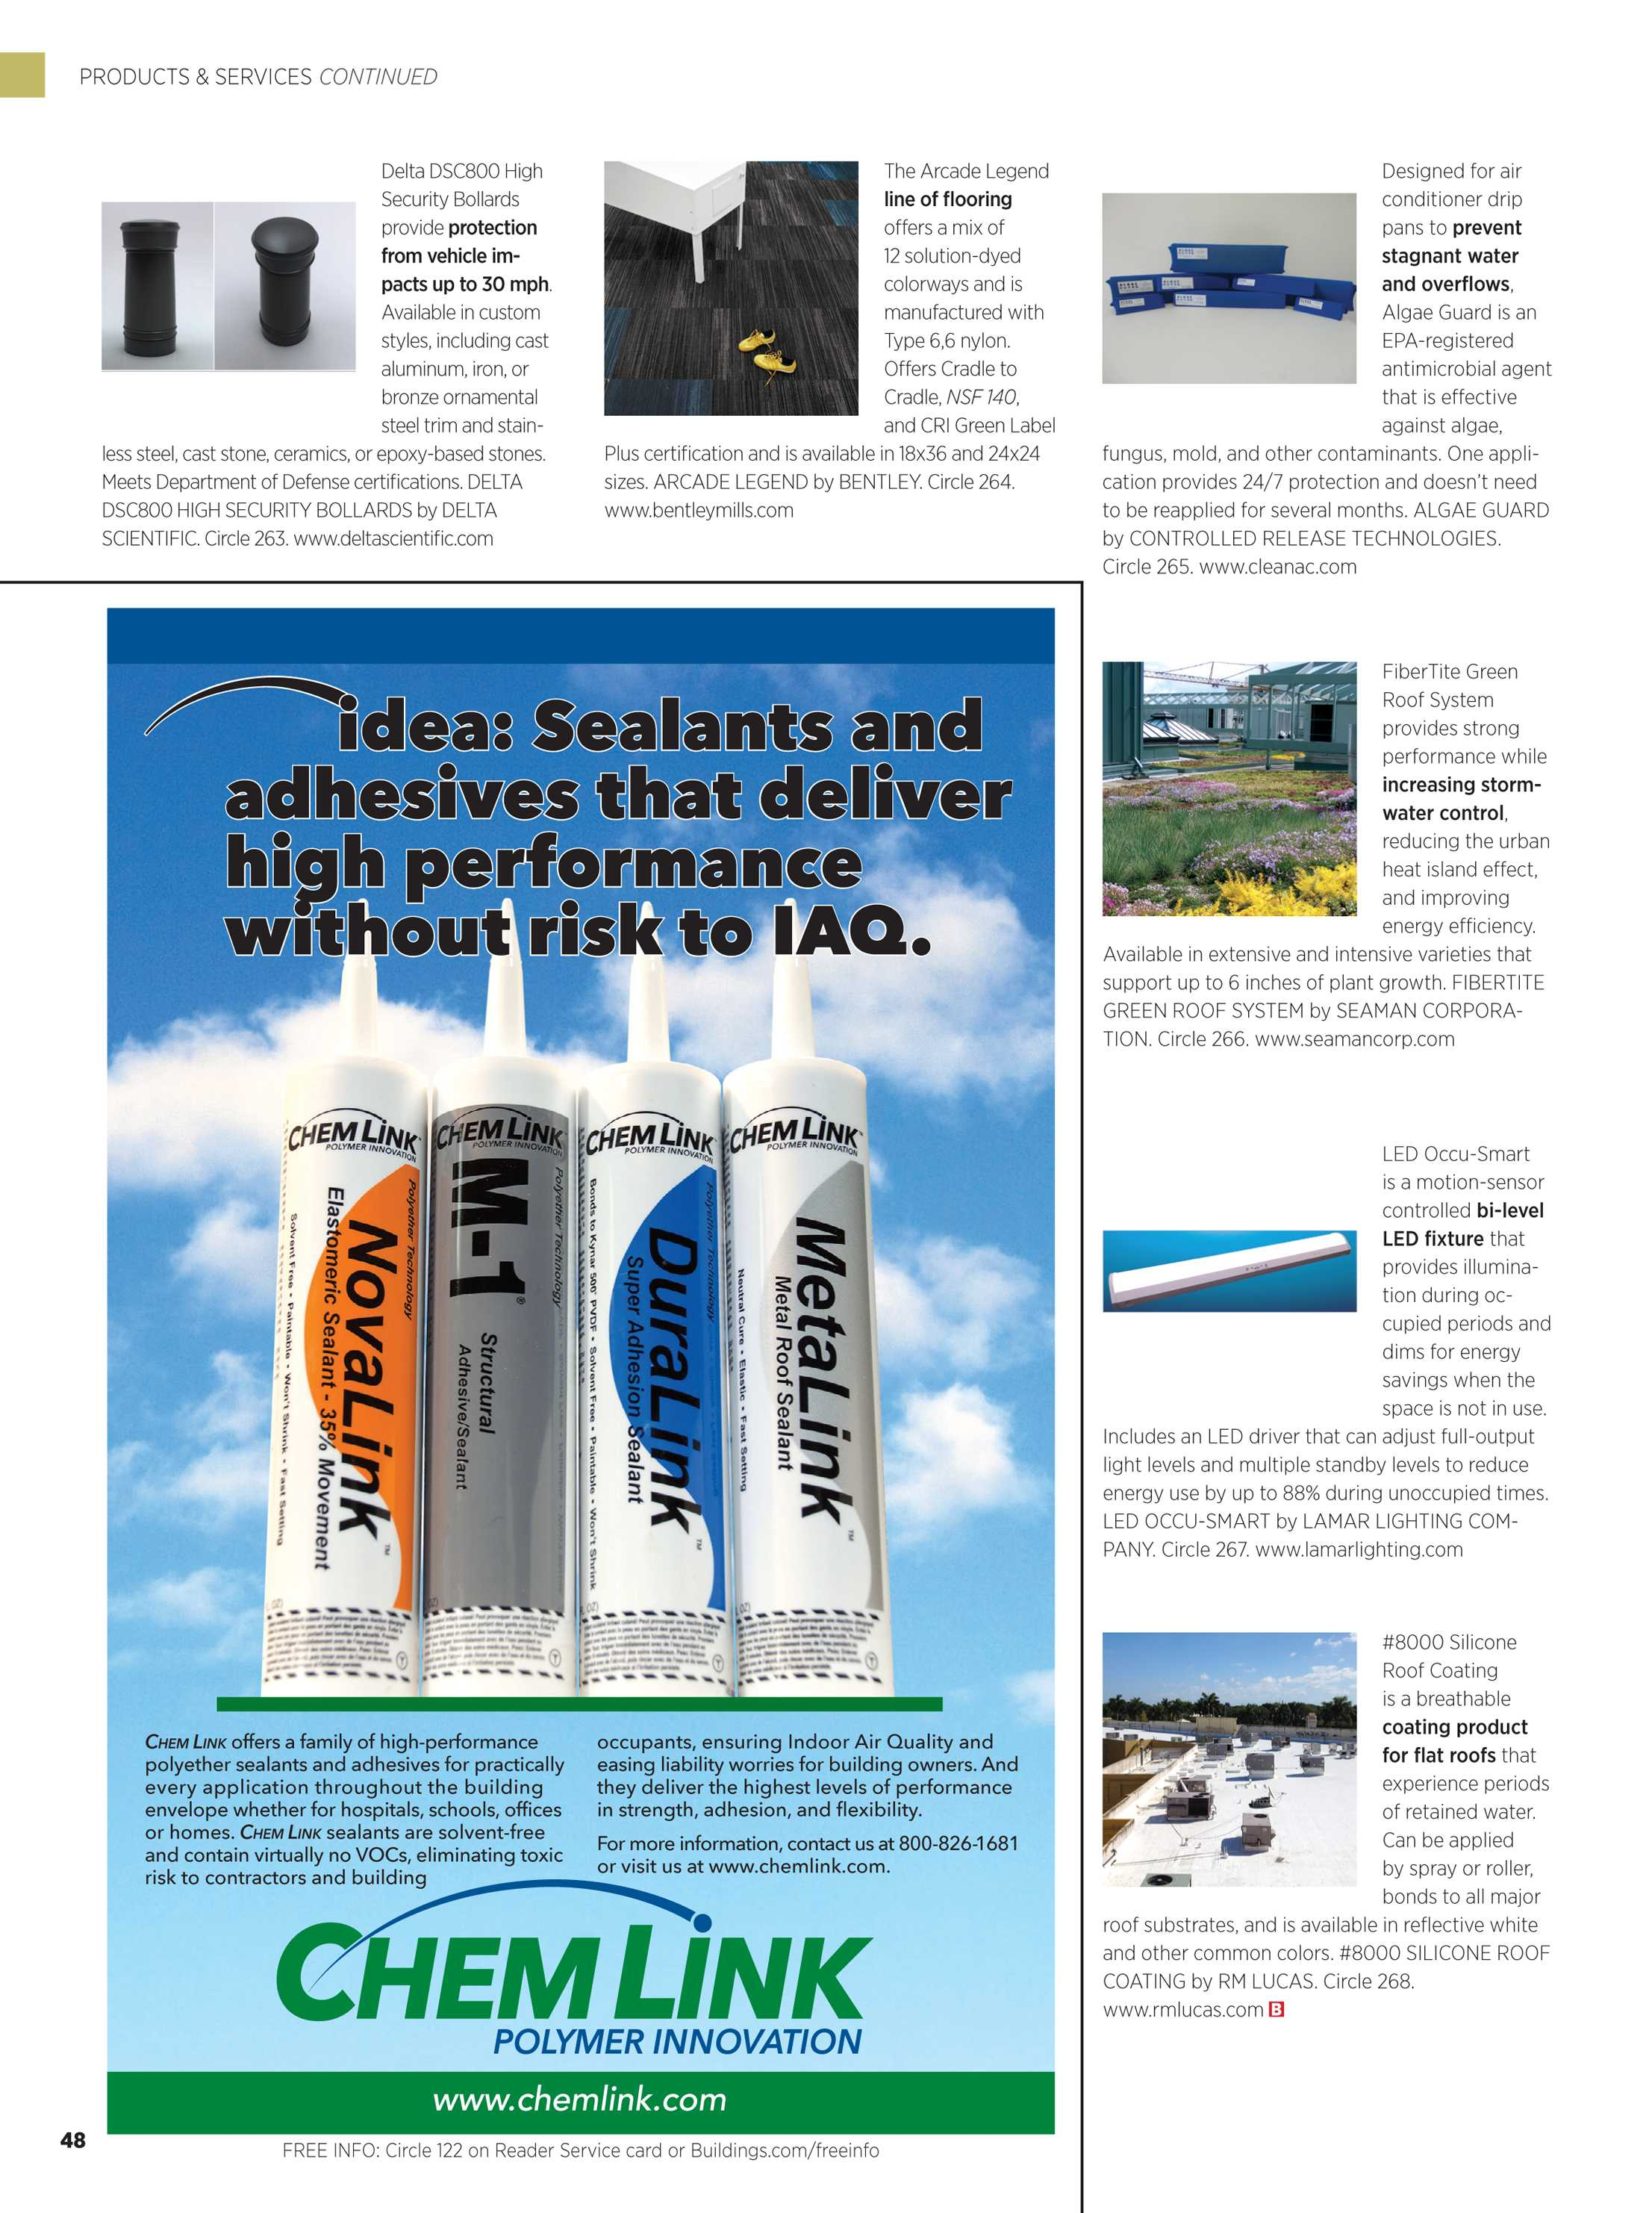 Buildings Magazine - March 2015 - page 48